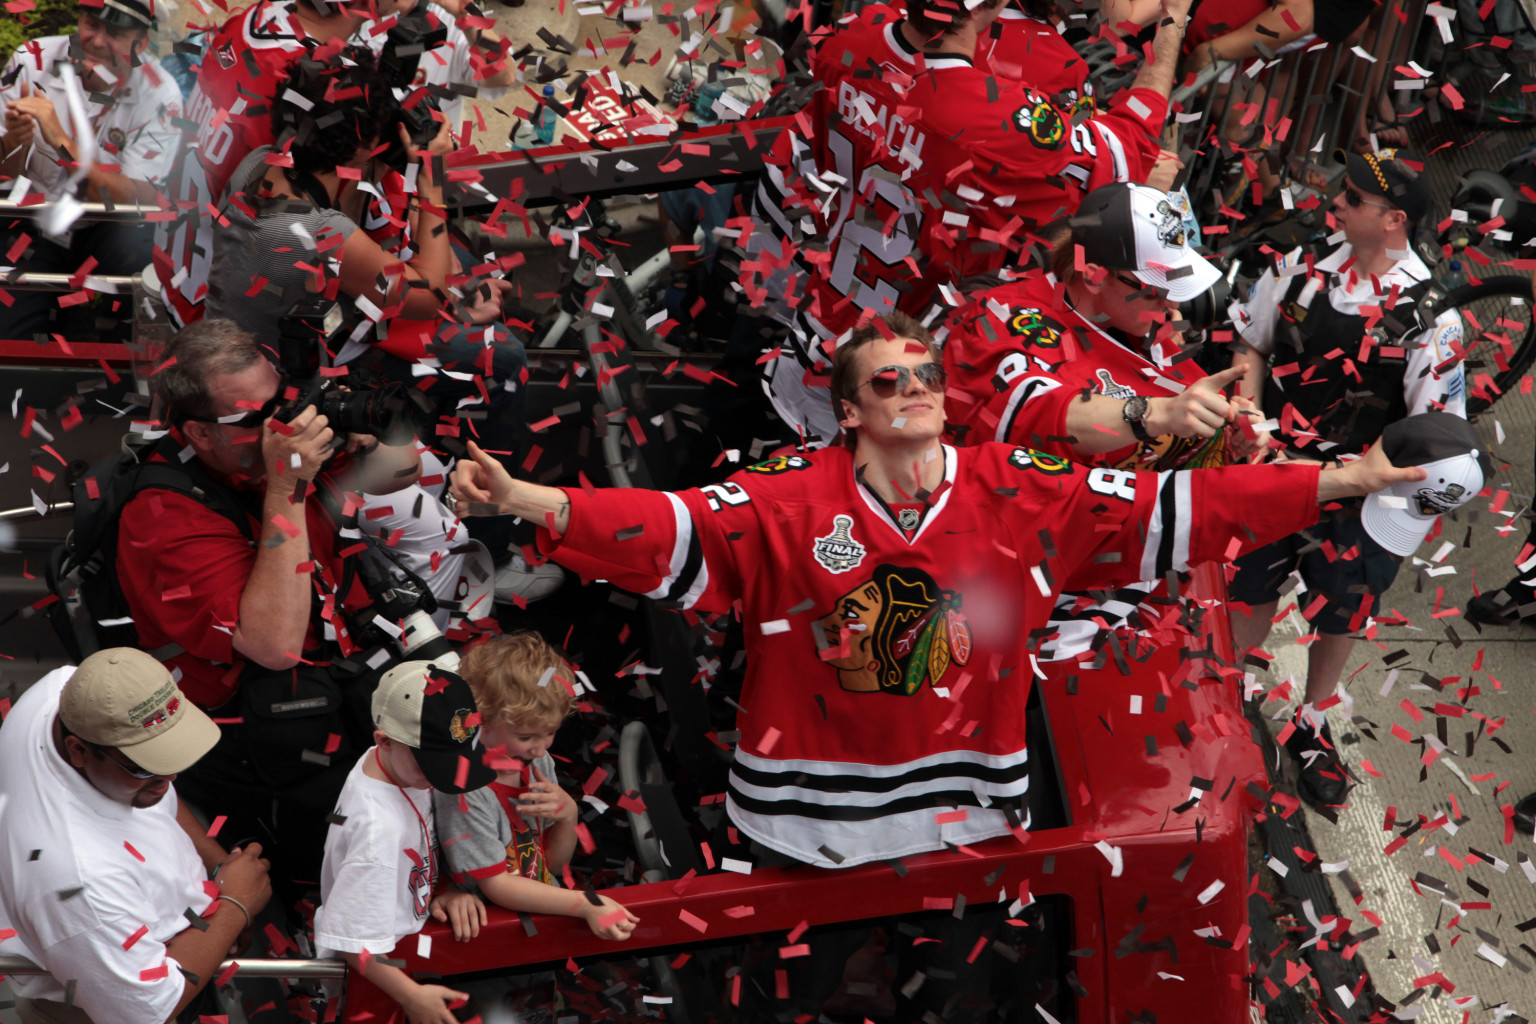 Blackhawks Parade June 29, 2013